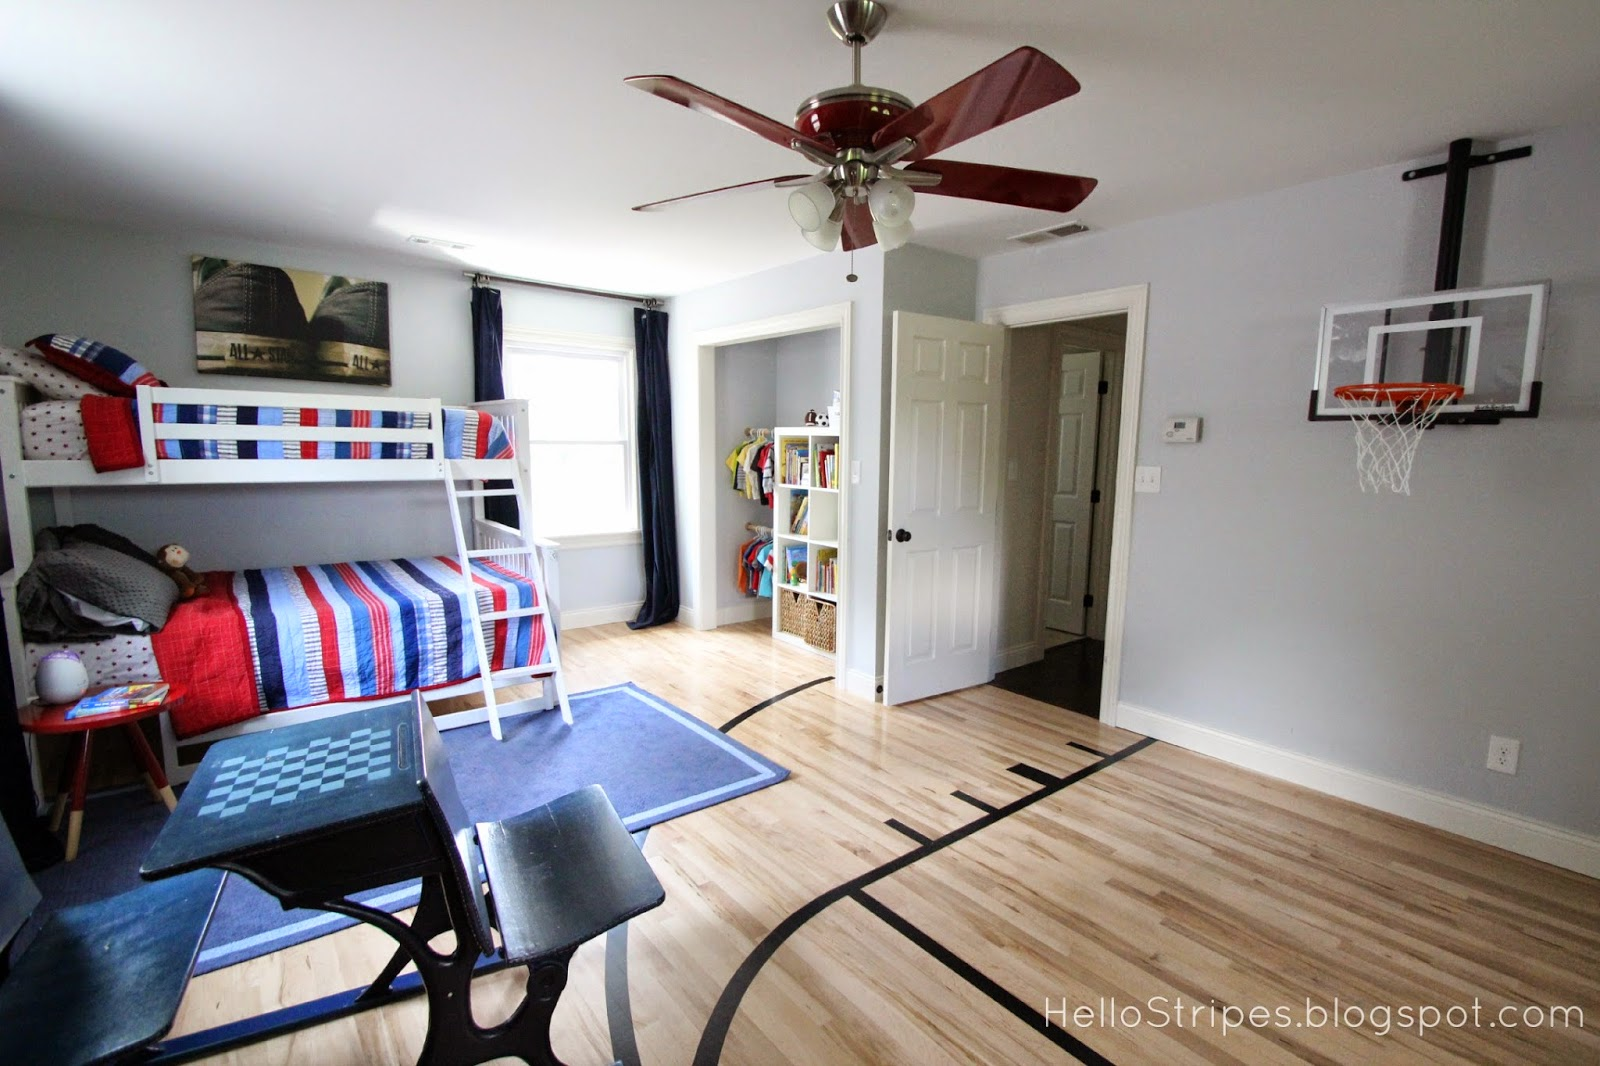 Hello stripes boys 39 bedroom before after for Basketball hoop for kids room